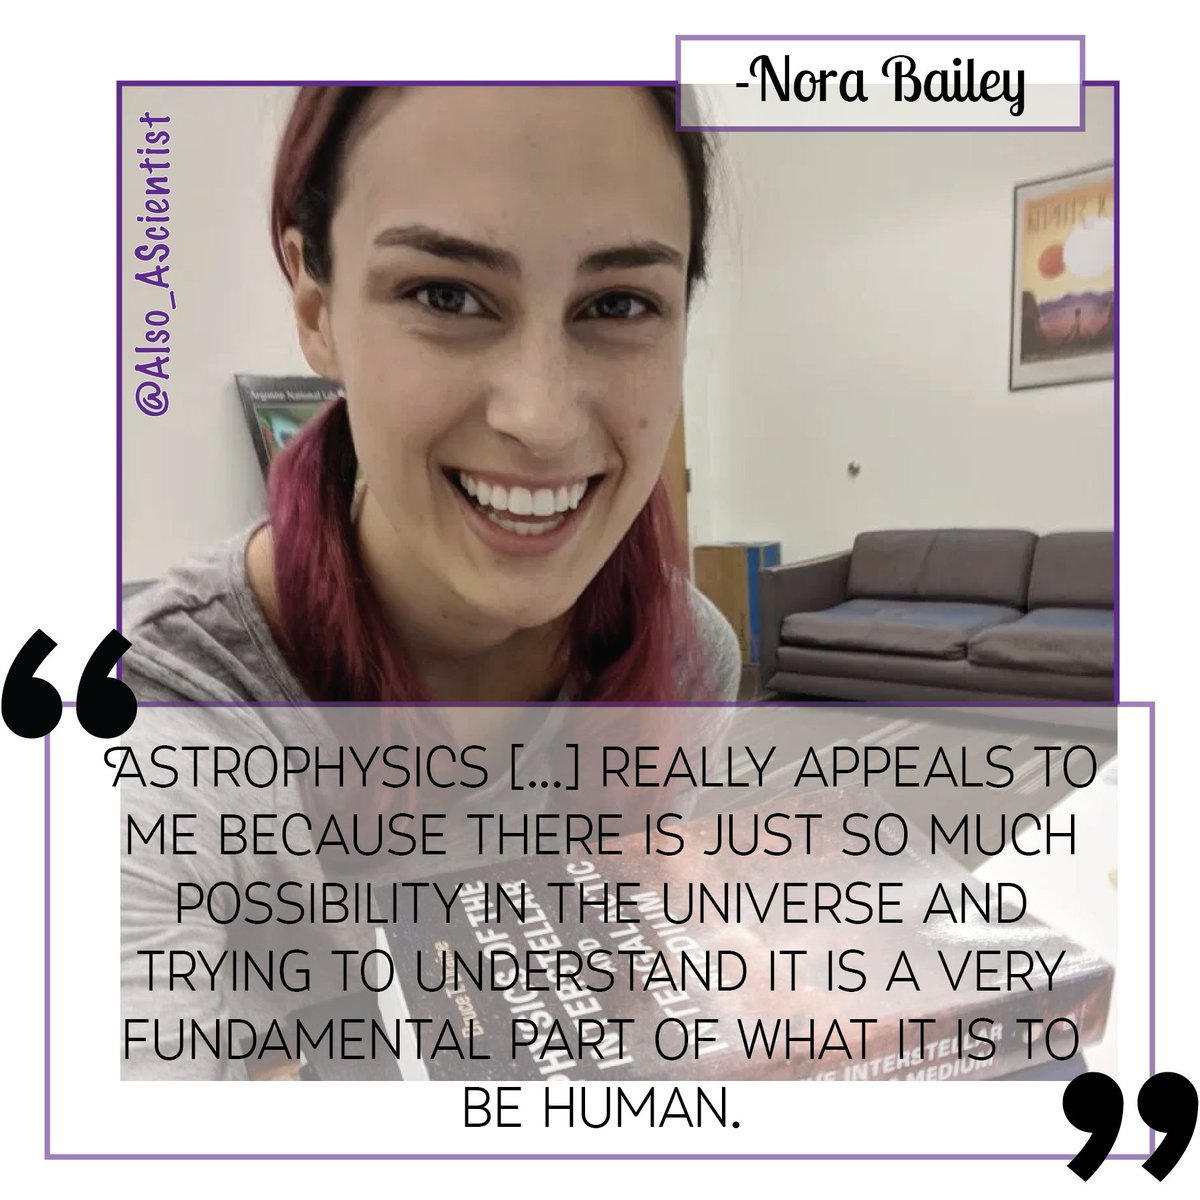 Meet @NoraSci! Shes a PhD student @UChicagoPSD studying how planets move around other stars. When not unraveling the mysteries of the Universe shes probably baking, training for her next half-marathon, or hanging out with her bunnies! #WomenInSTEM ✨ow.ly/m12B50ytjJI✨